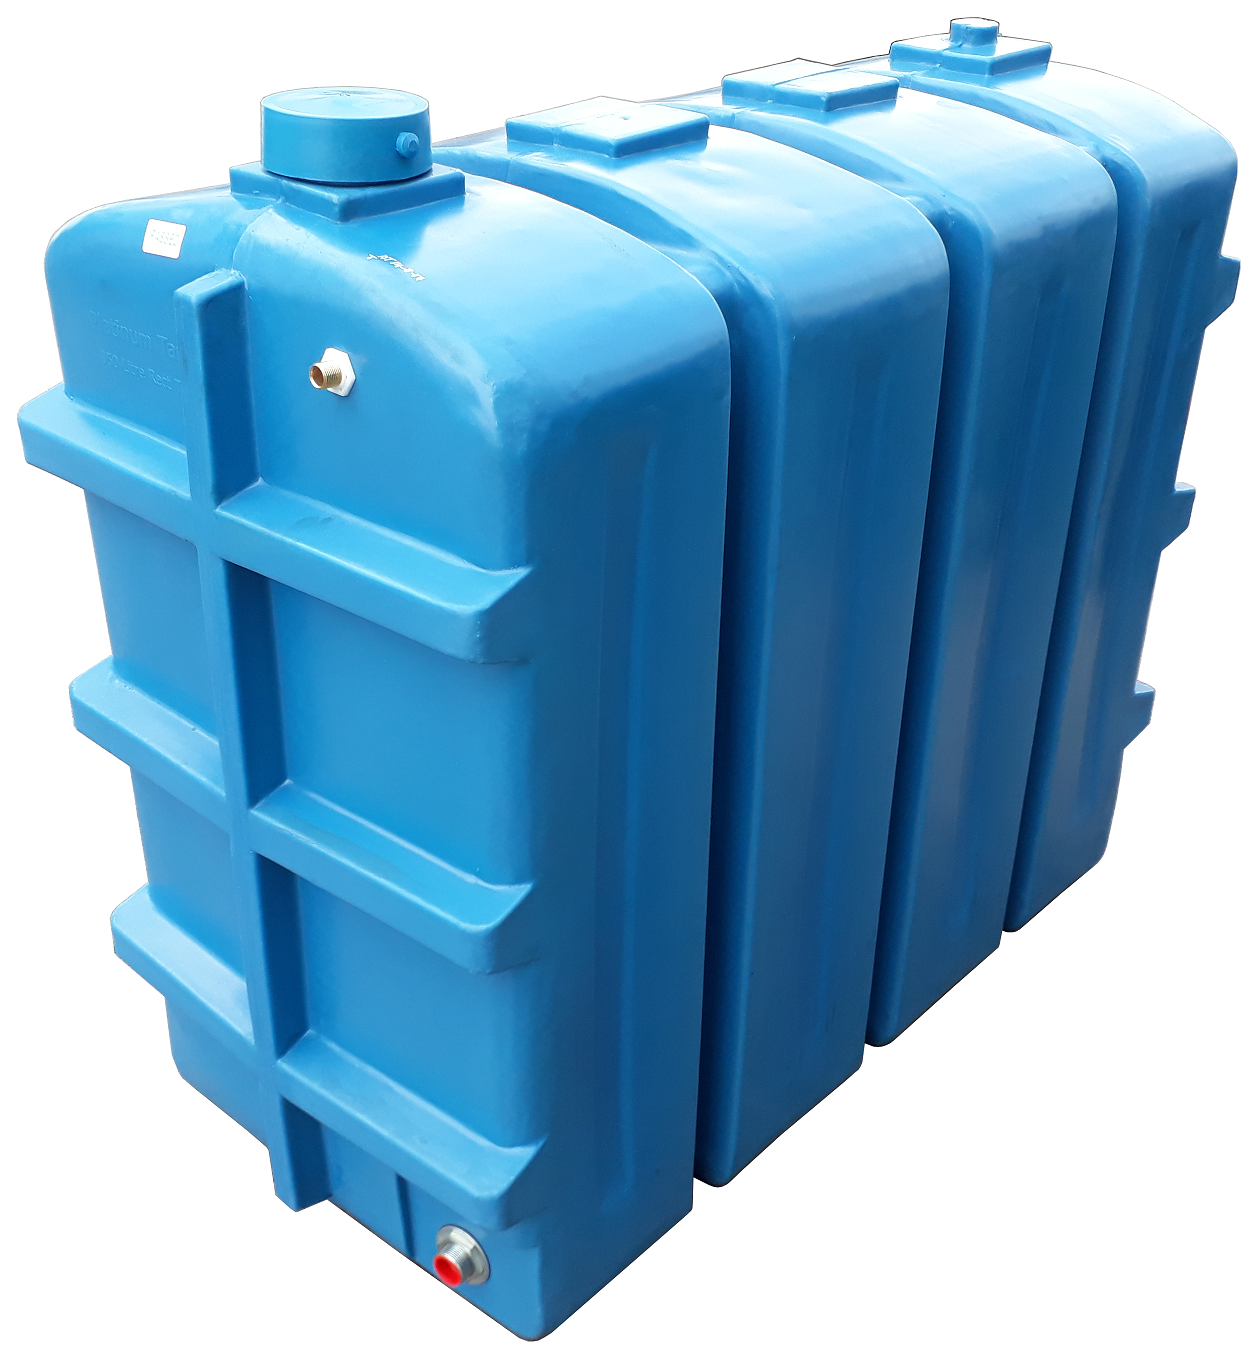 950 Litre Potable Water Tank Image